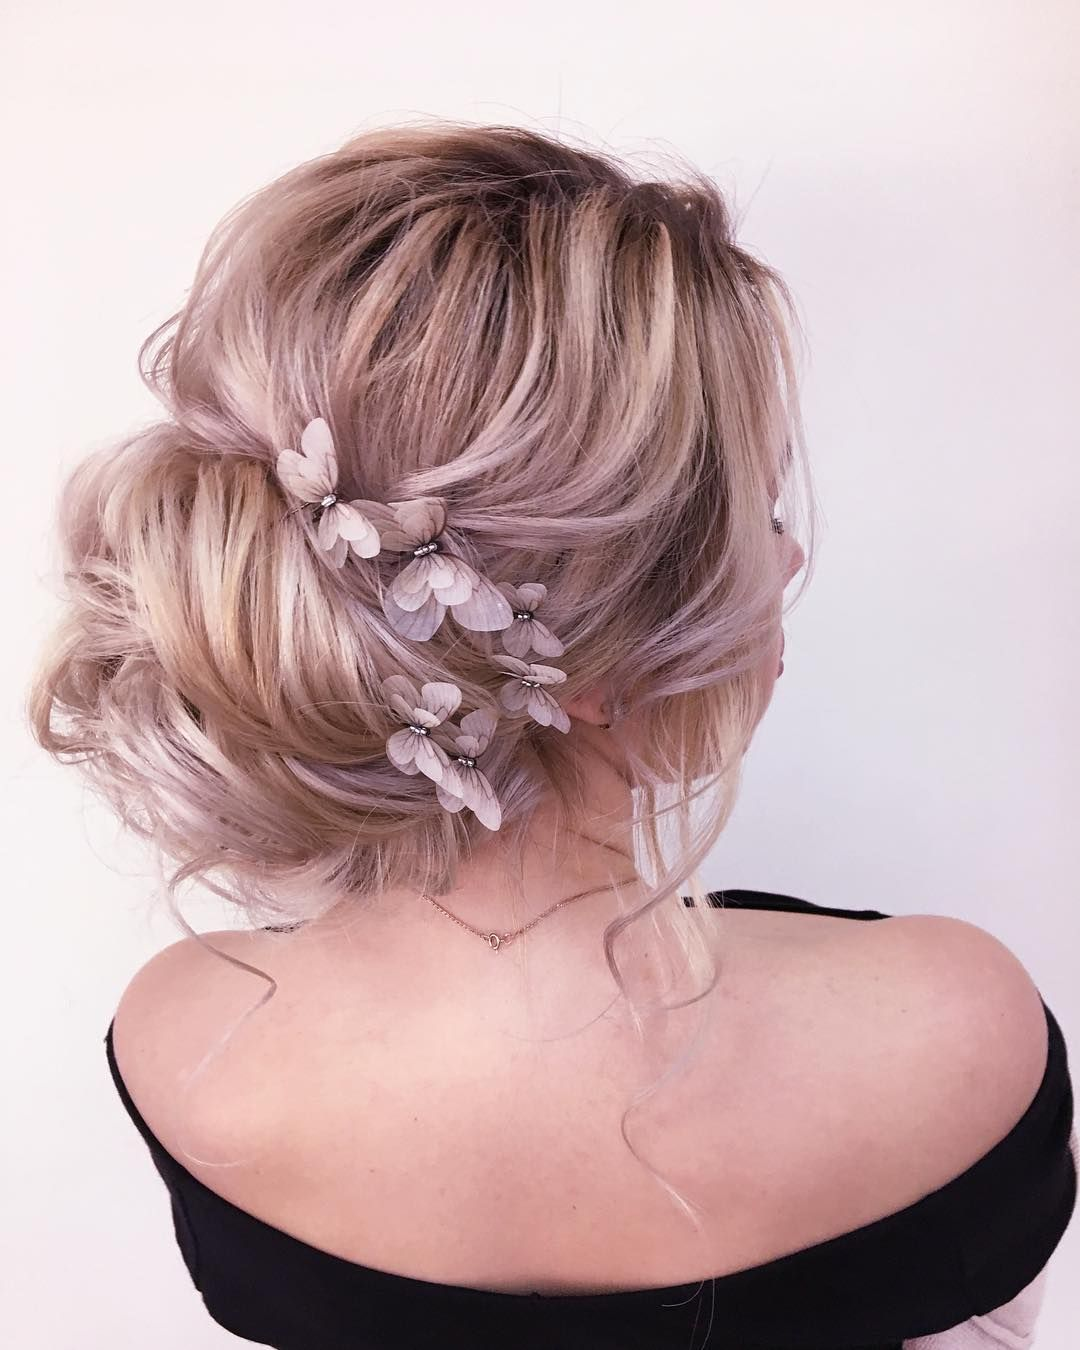 79 Beautiful Bridal Updos Wedding Hairstyles For A Romantic Bridal ...